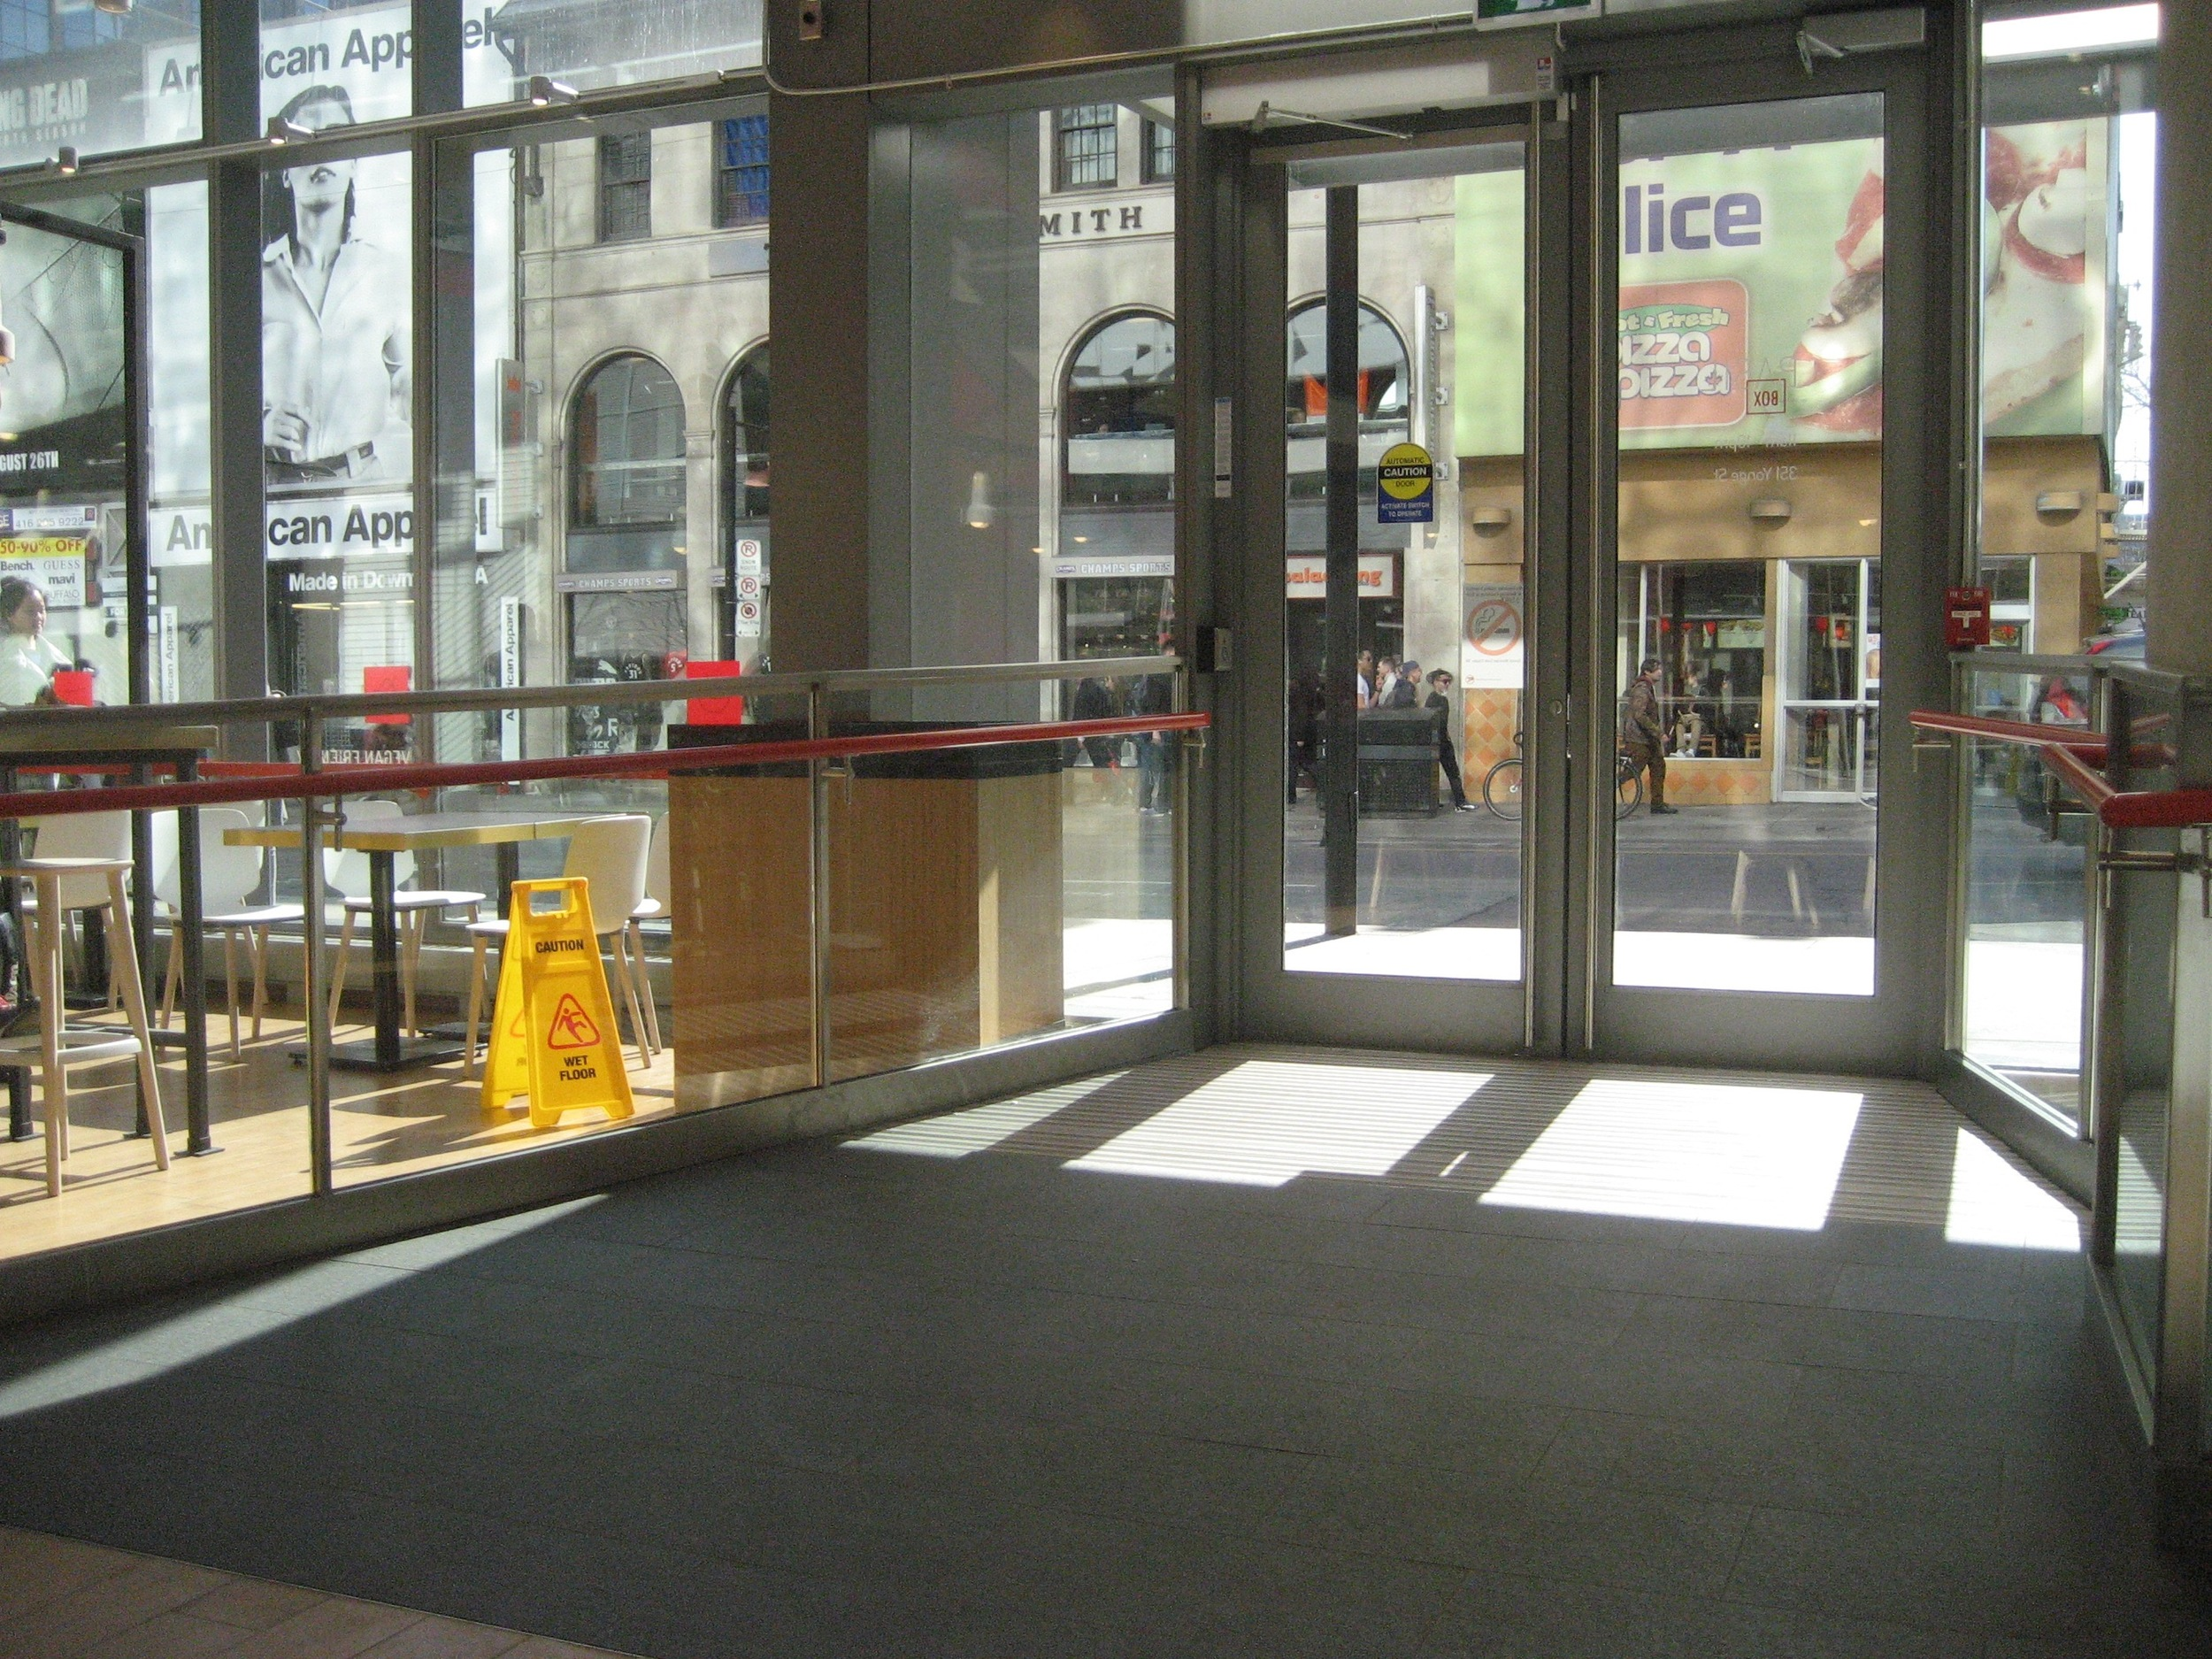 Picture of the accessible entrance from the inside showing where the automatic door opener is located.